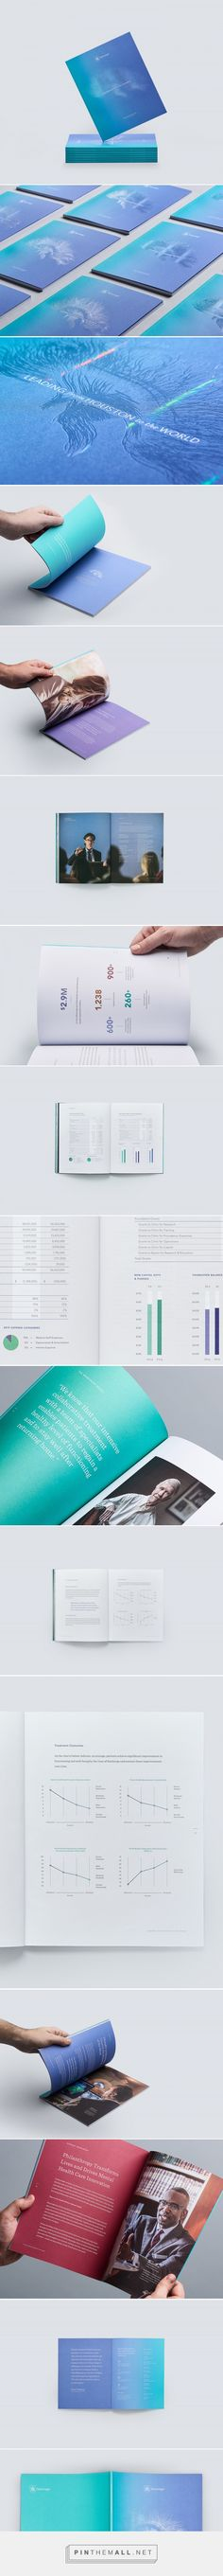 The Menninger Clinic Annual Report on Behance - created via https://pinthemall.net